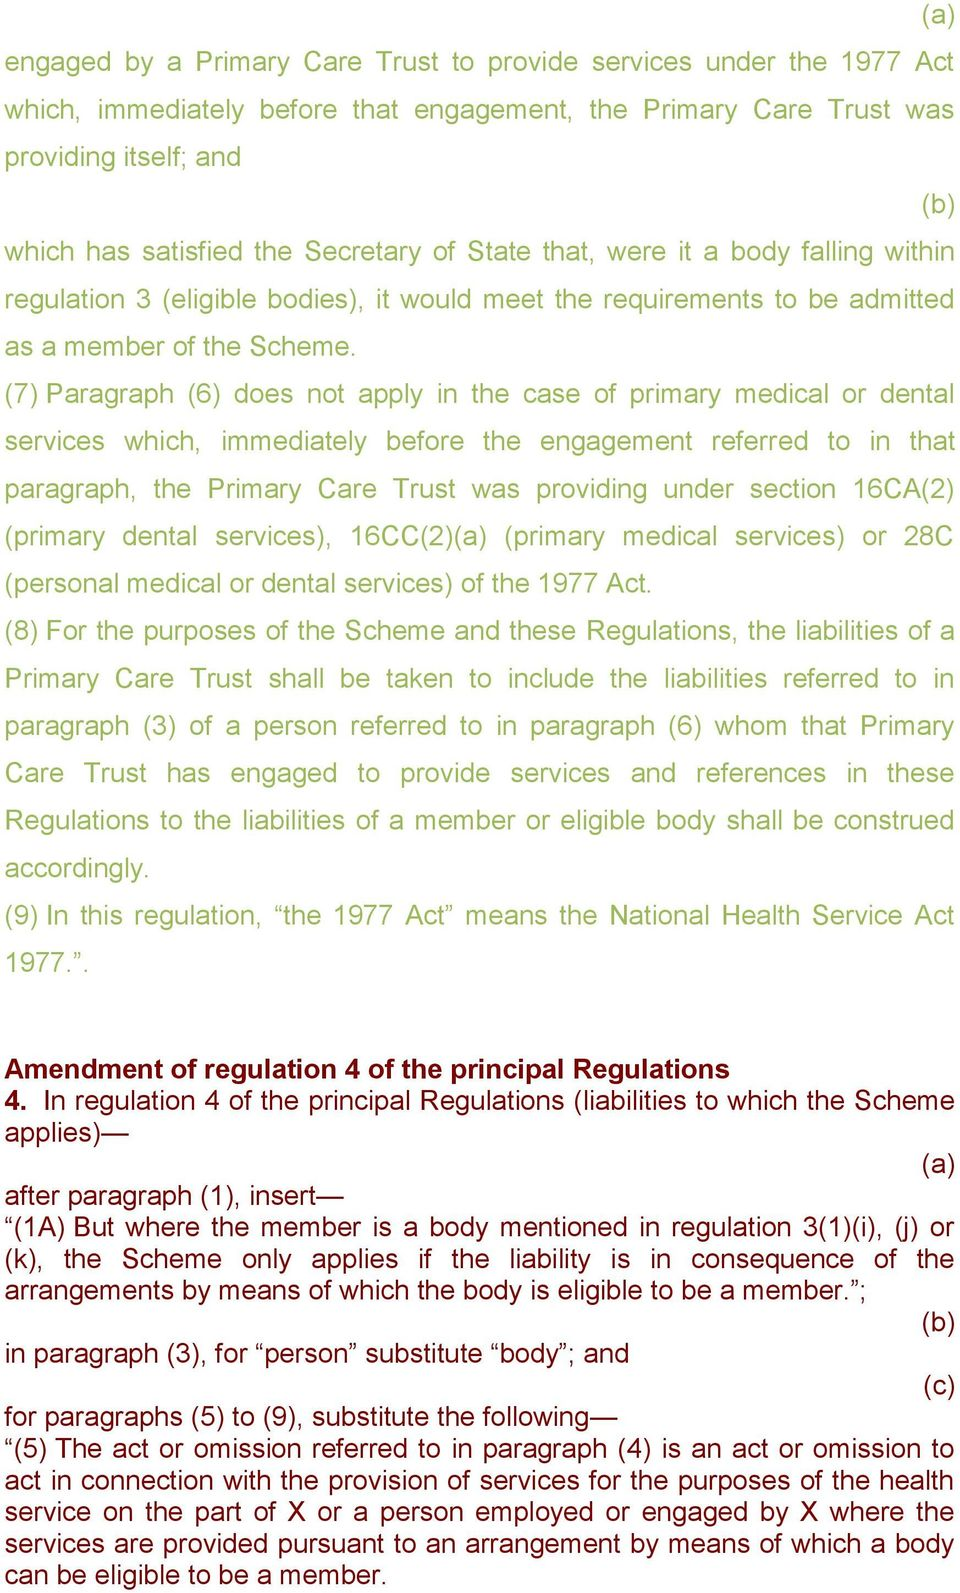 (7) Paragraph (6) does not apply in the case of primary medical or dental services which, immediately before the engagement referred to in that paragraph, the Primary Care Trust was providing under